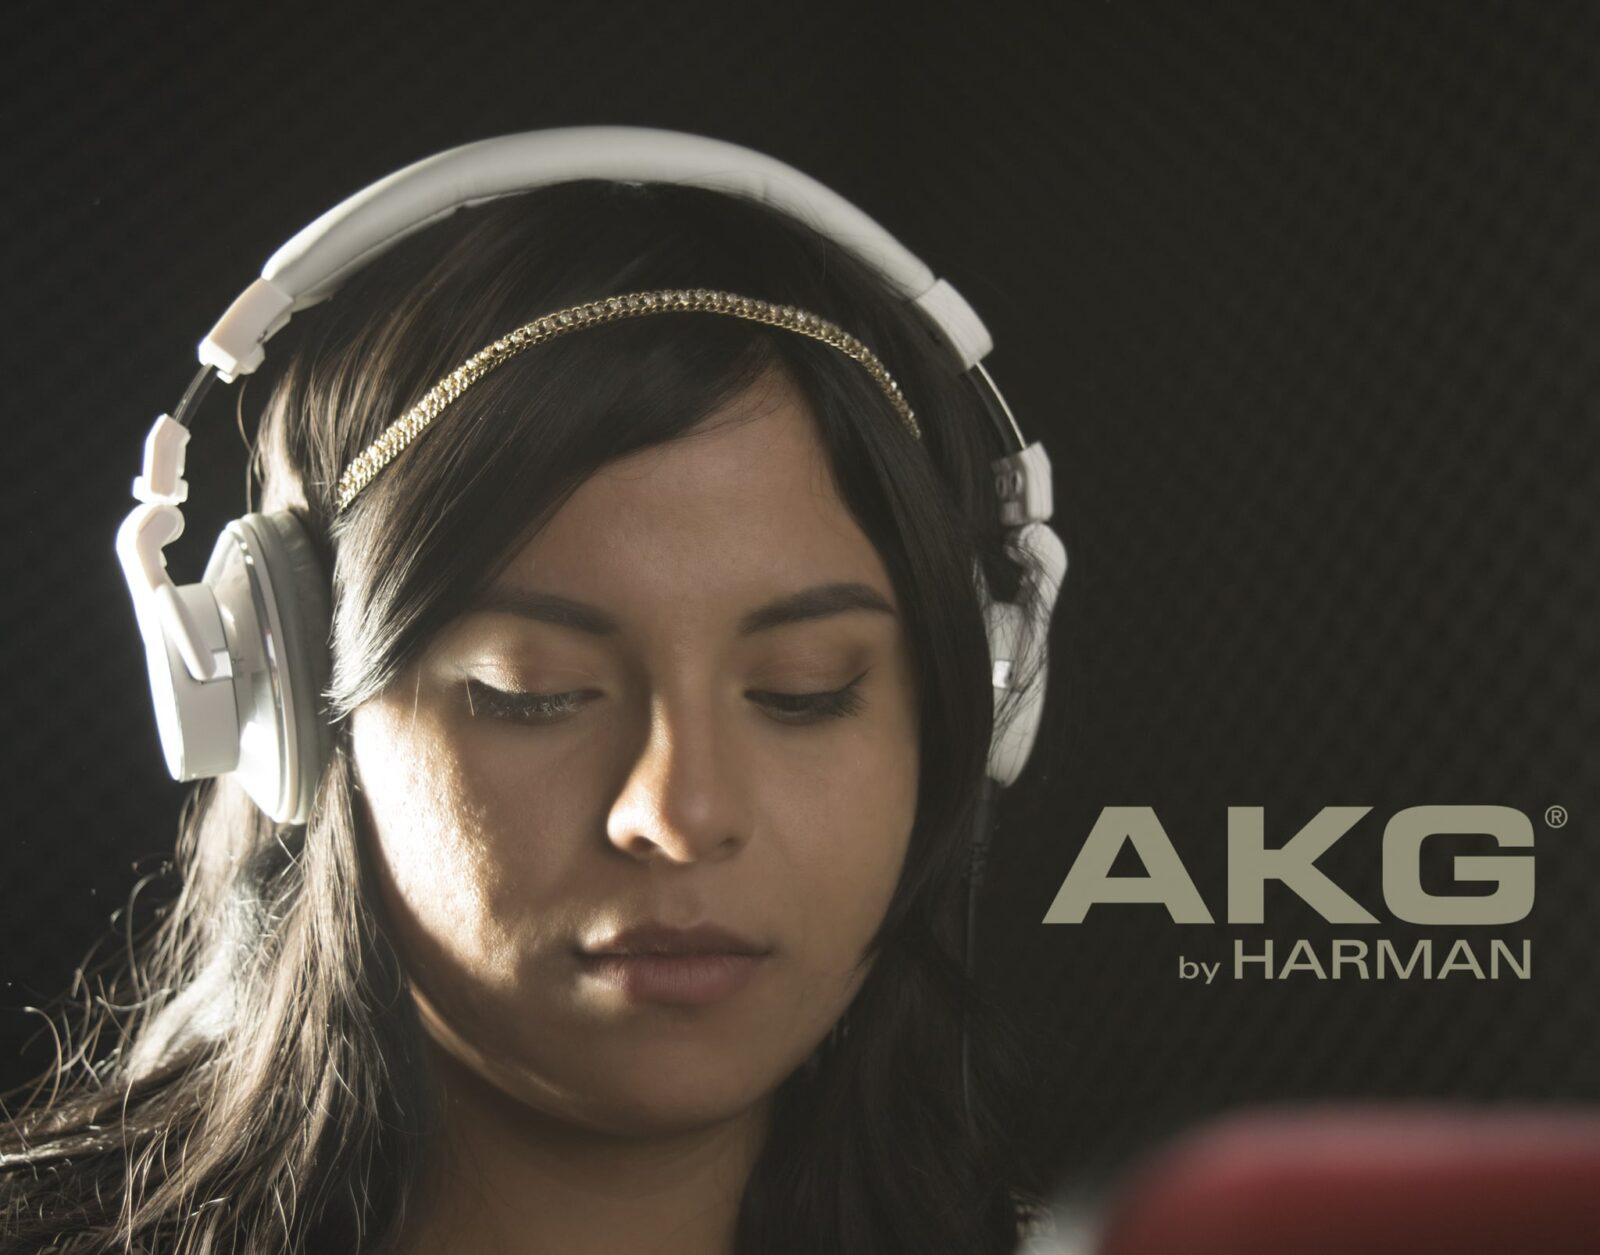 AKG Headphones wallpaper